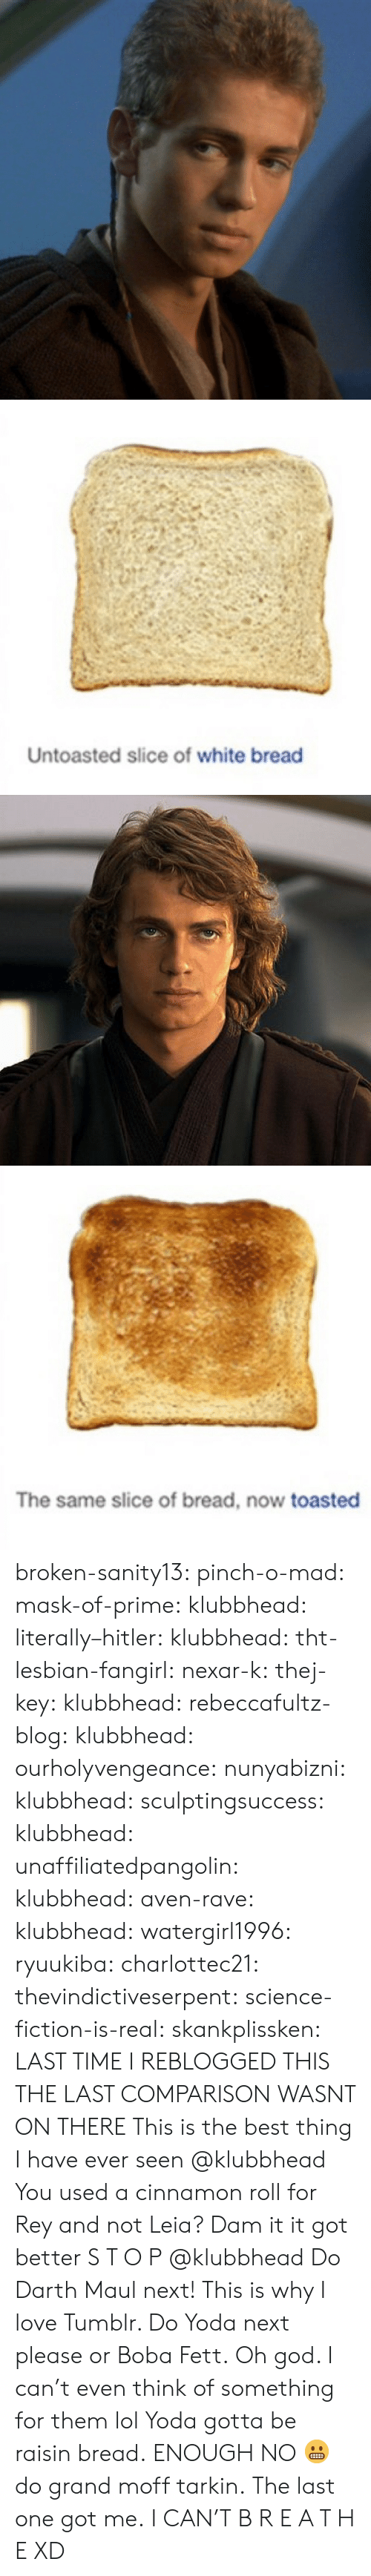 Slice: Untoasted slice of white bread   The same slice of bread, now toasted broken-sanity13:  pinch-o-mad:   mask-of-prime:  klubbhead:  literally–hitler:  klubbhead:  tht-lesbian-fangirl:  nexar-k:  thej-key:  klubbhead:  rebeccafultz-blog:   klubbhead:  ourholyvengeance:  nunyabizni:  klubbhead:  sculptingsuccess:  klubbhead:   unaffiliatedpangolin:  klubbhead:  aven-rave:  klubbhead:   watergirl1996:  ryuukiba:  charlottec21:  thevindictiveserpent:  science-fiction-is-real:  skankplissken:                   LAST TIME I REBLOGGED THIS THE LAST COMPARISON WASNT ON THERE    This is the best thing I have ever seen   @klubbhead You used a cinnamon roll for Rey and not Leia?    Dam it it got better   S T O P  @klubbhead Do Darth Maul next!   This is why I love Tumblr. Do Yoda next please or Boba Fett.   Oh god. I can't even think of something for them lol  Yoda gotta be raisin bread.   ENOUGH   NO 😬 do grand moff tarkin.     The last one got me.   I CAN'T  B R E A T H E  XD